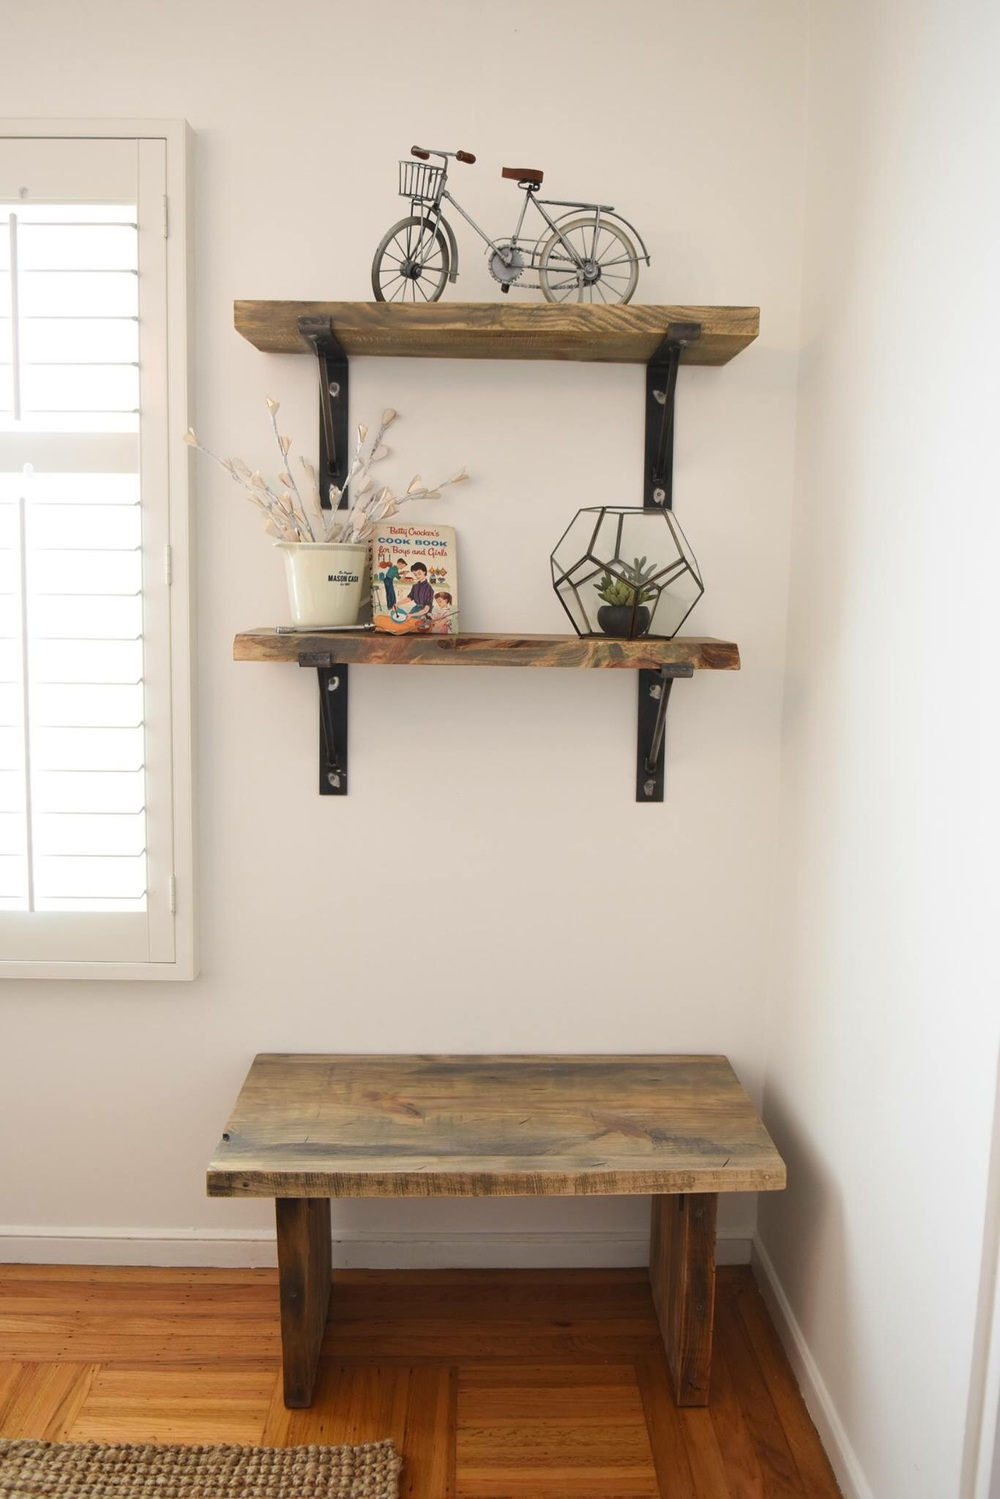 Accent items like benches and shelves can be added to tie the wood countertops in to the space.